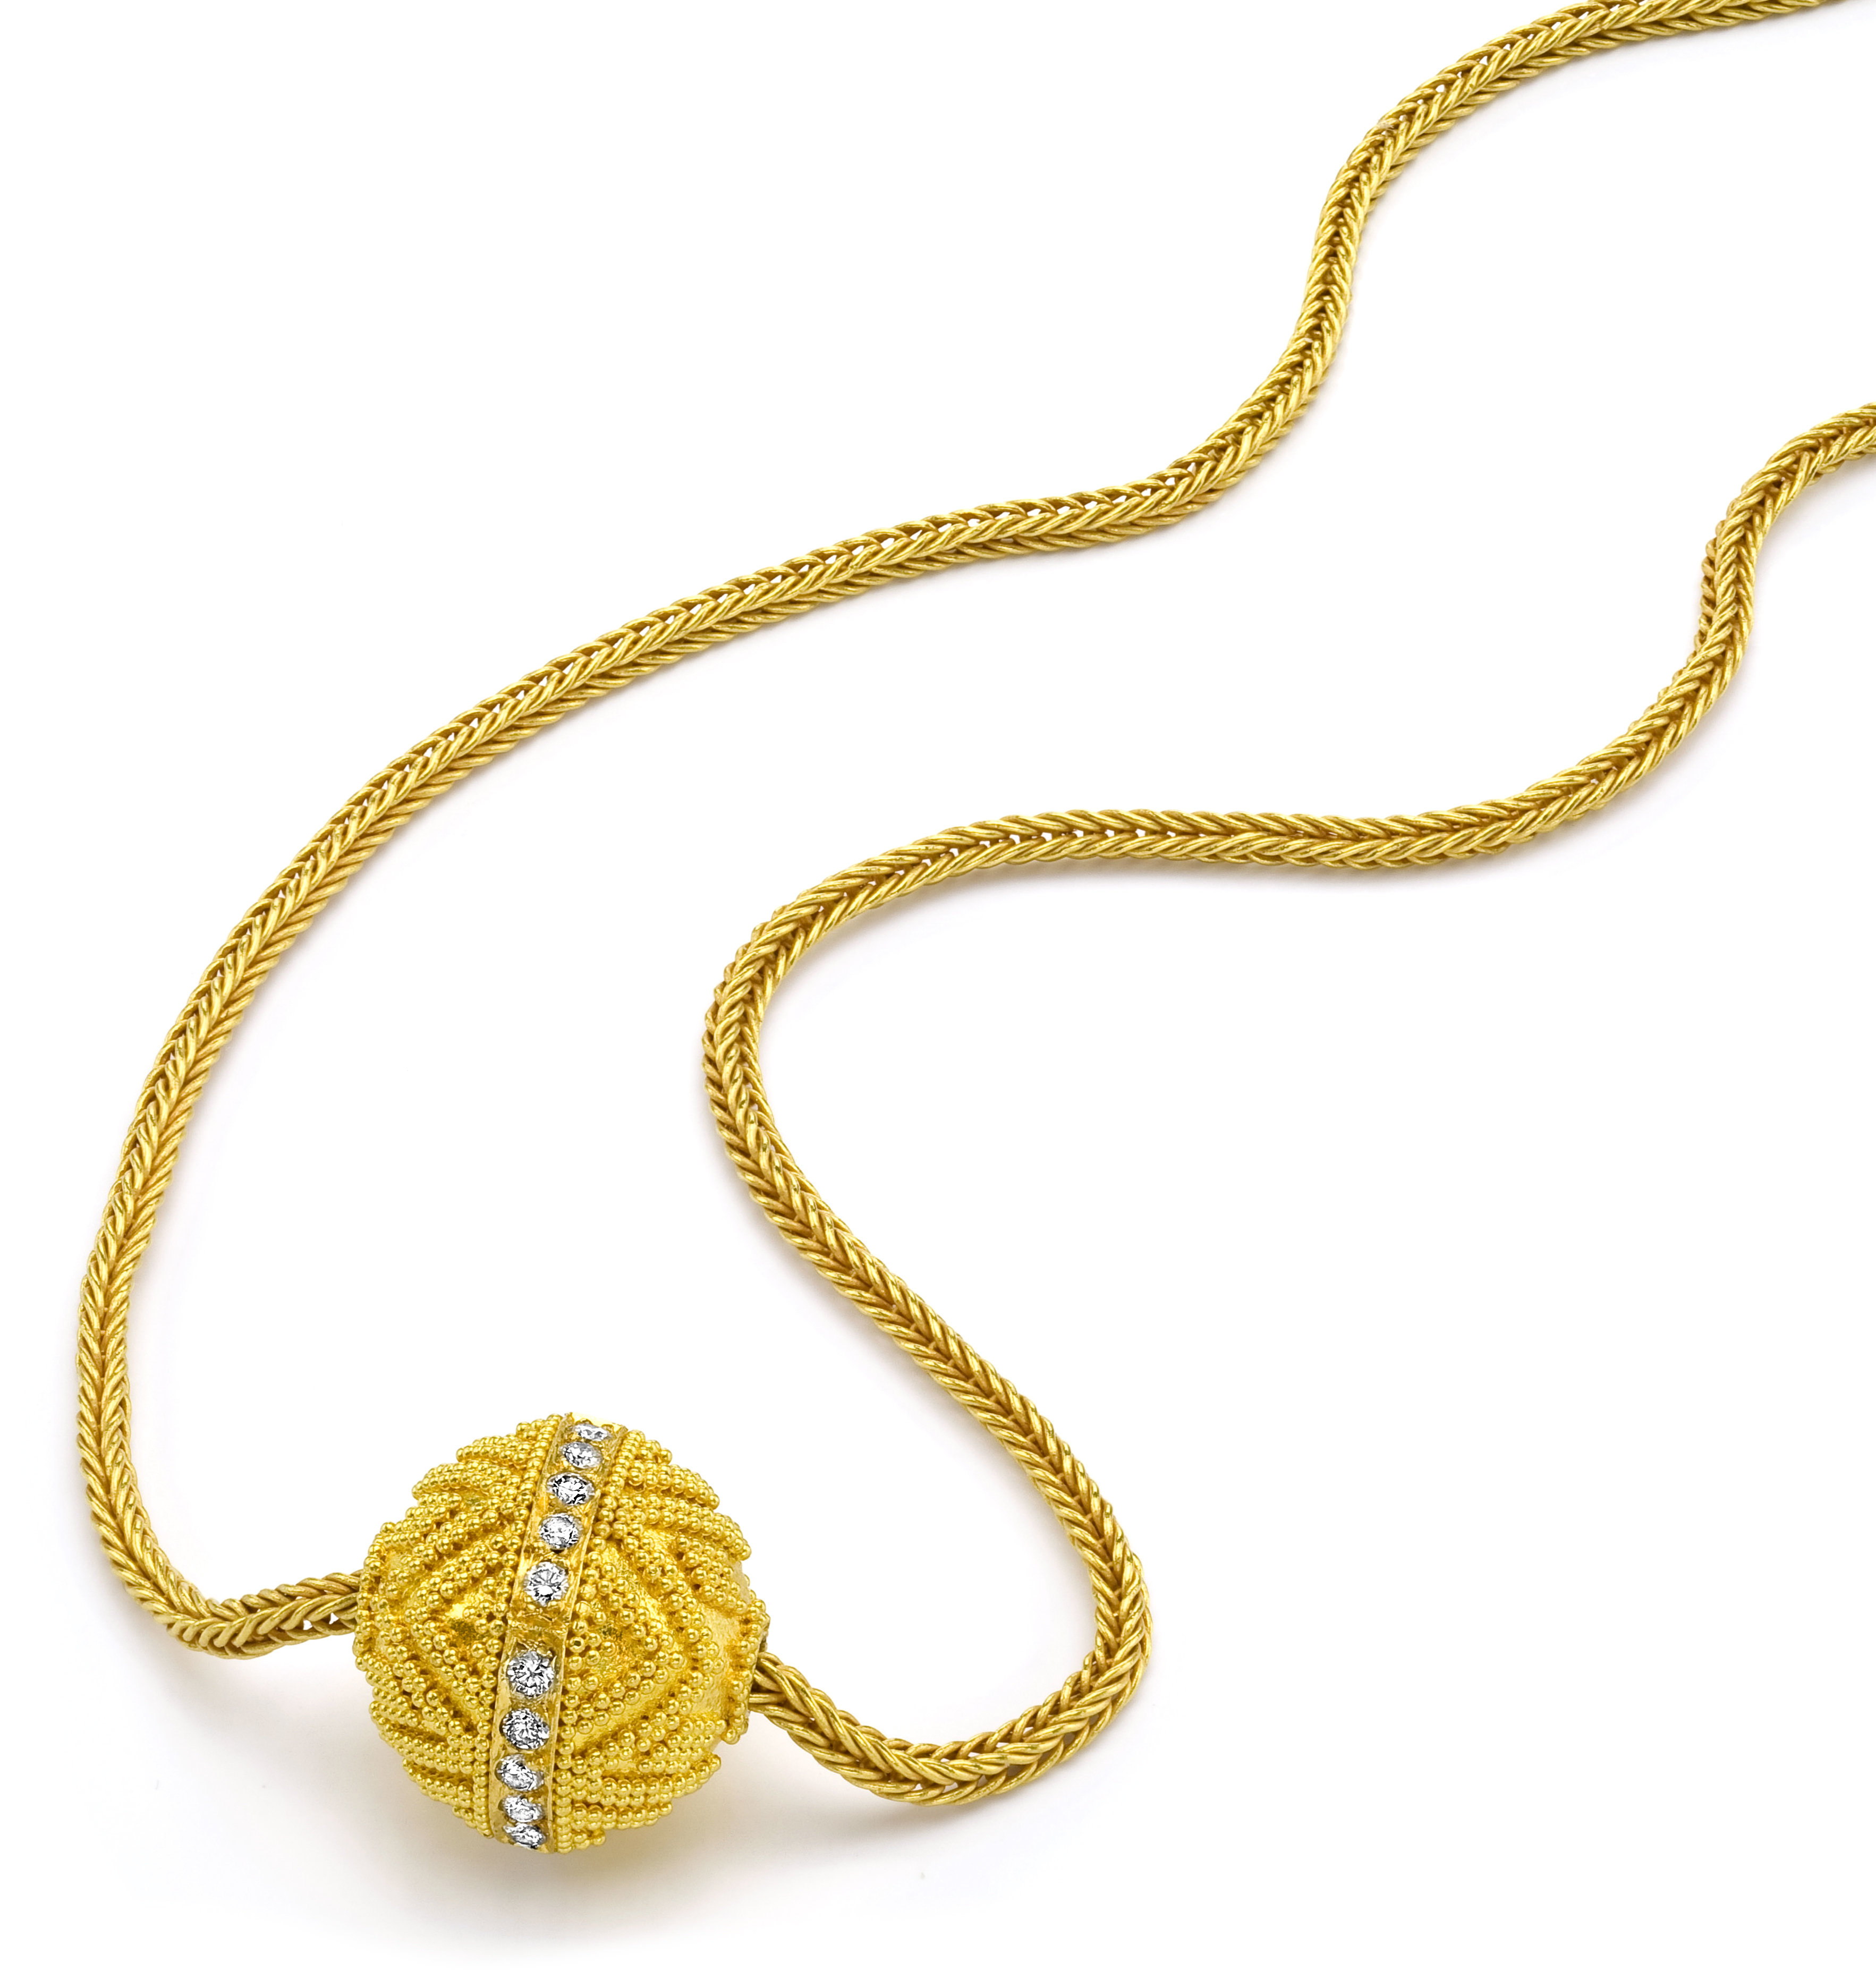 p100 necklace.jpg